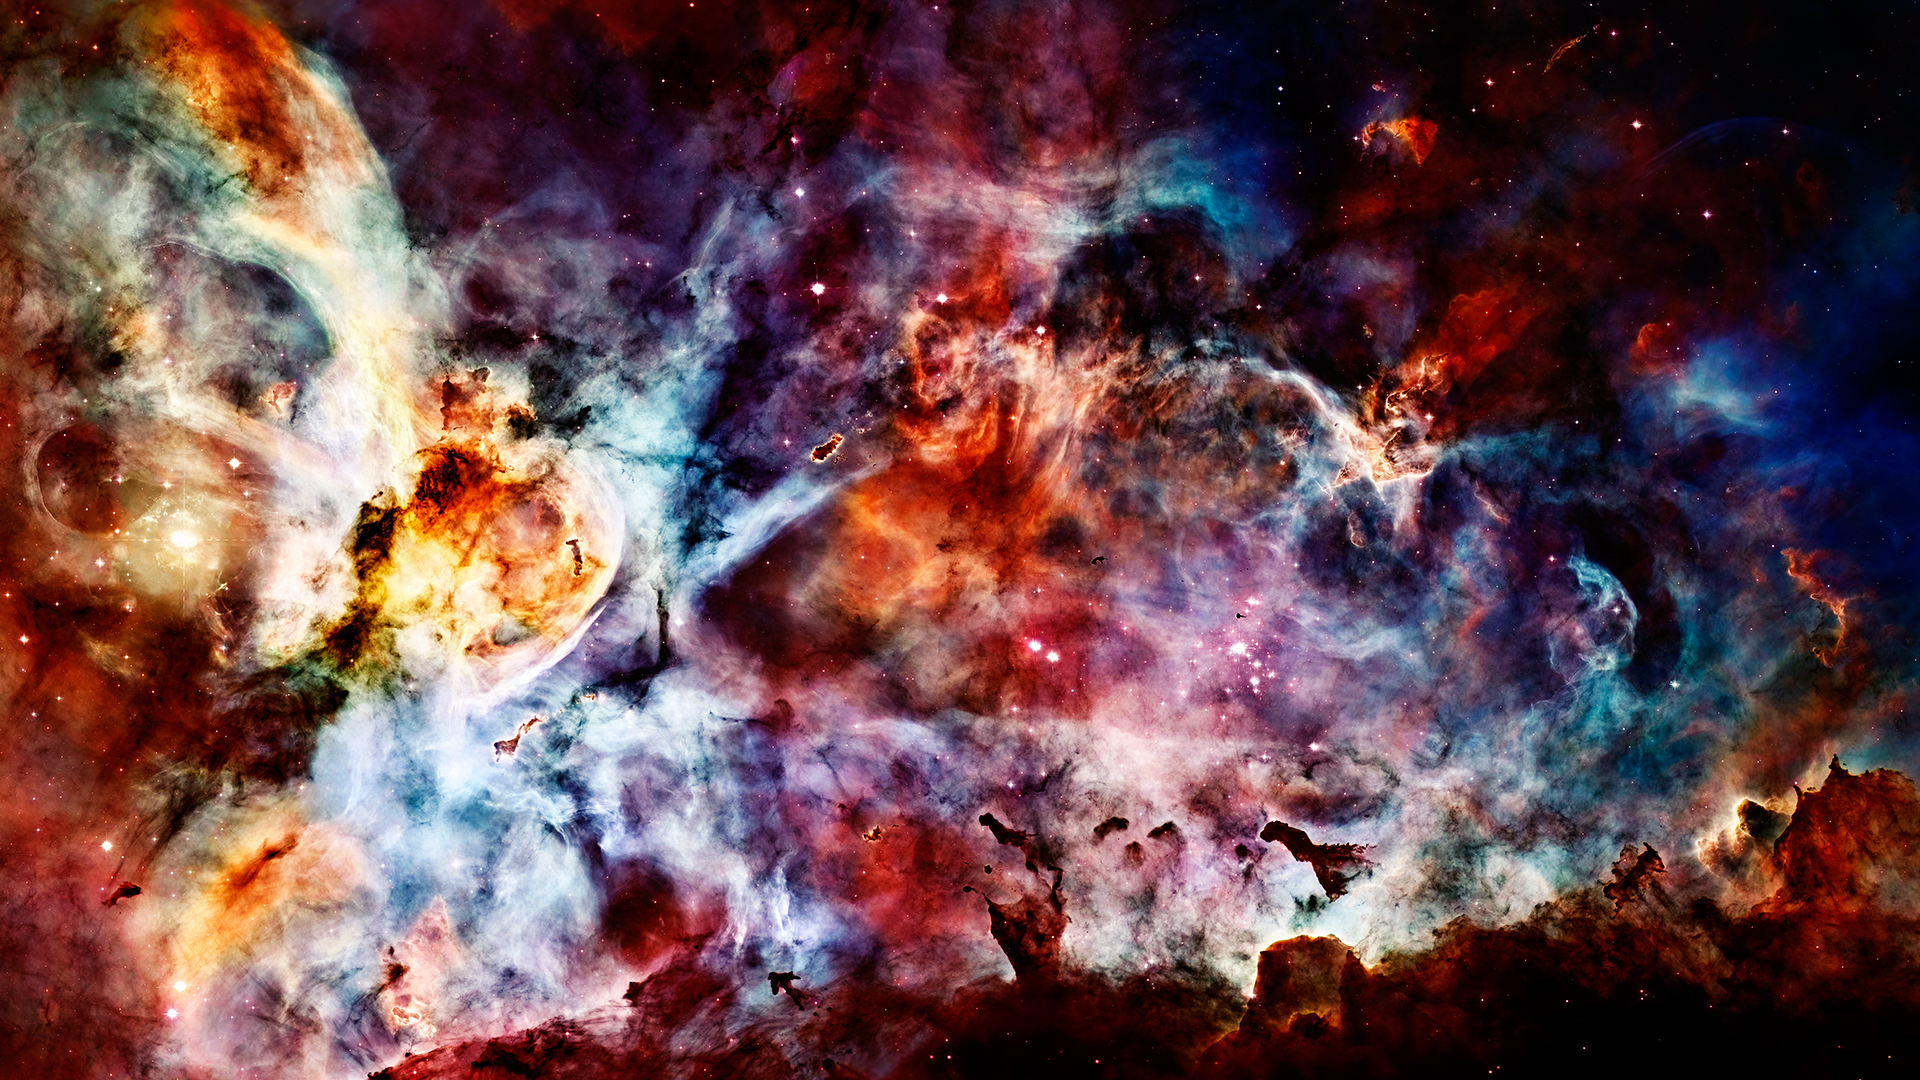 outer space nebulae Carina HD Wallpaper